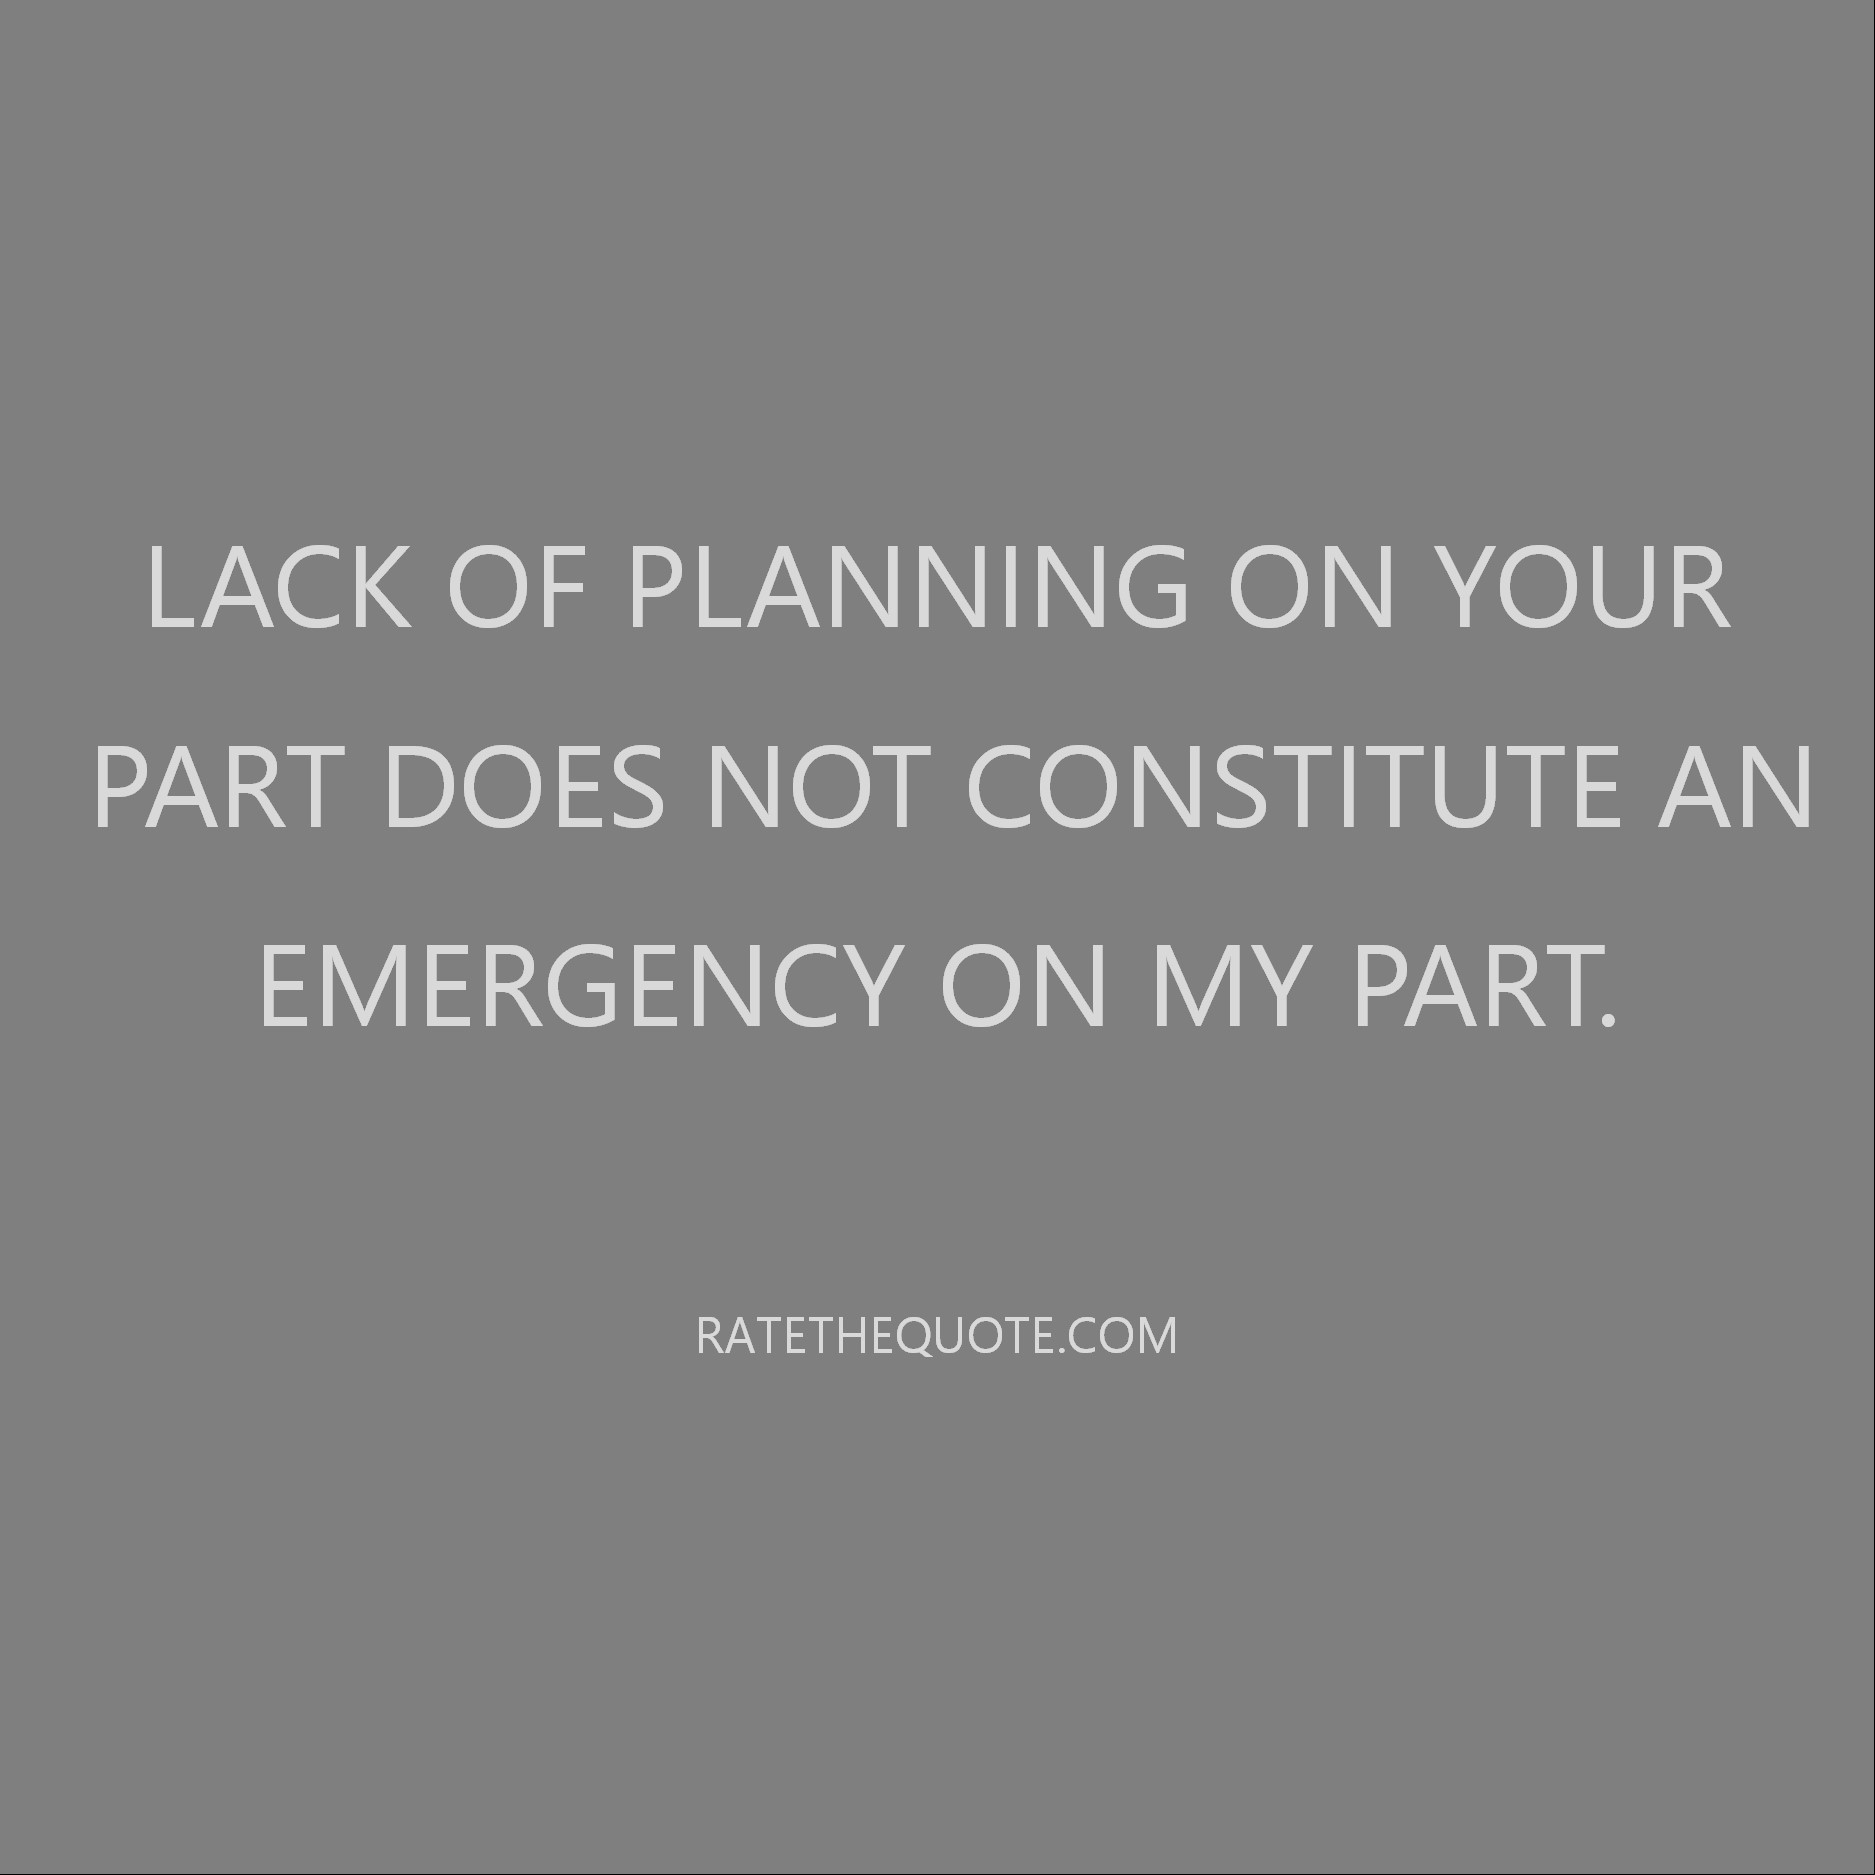 Quote Lack of planning on your part does not constitute an emergency on my part.